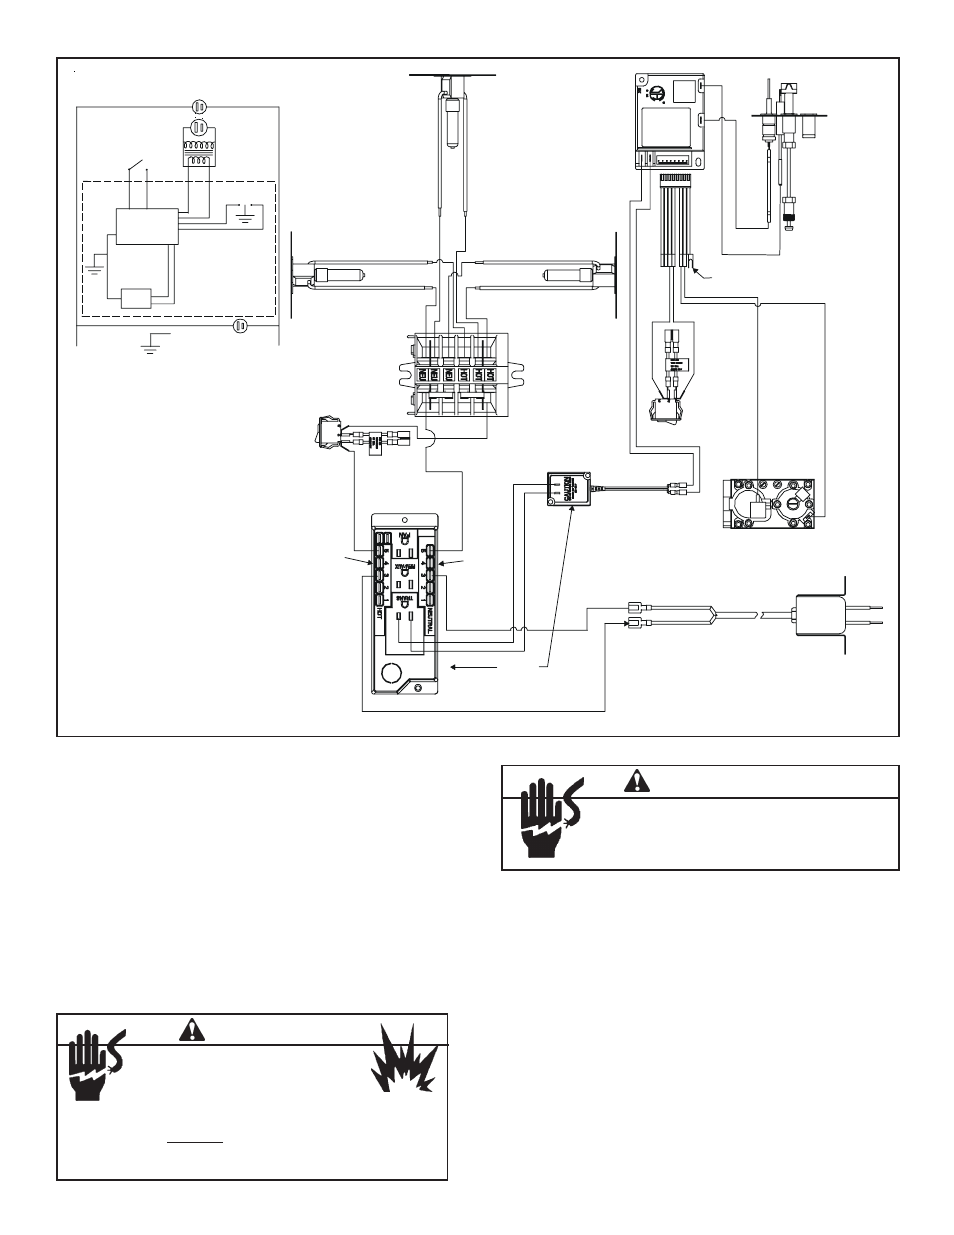 Fireplace Gas Valve Wiring Diagram Furthermore Majestic Gas Fireplace